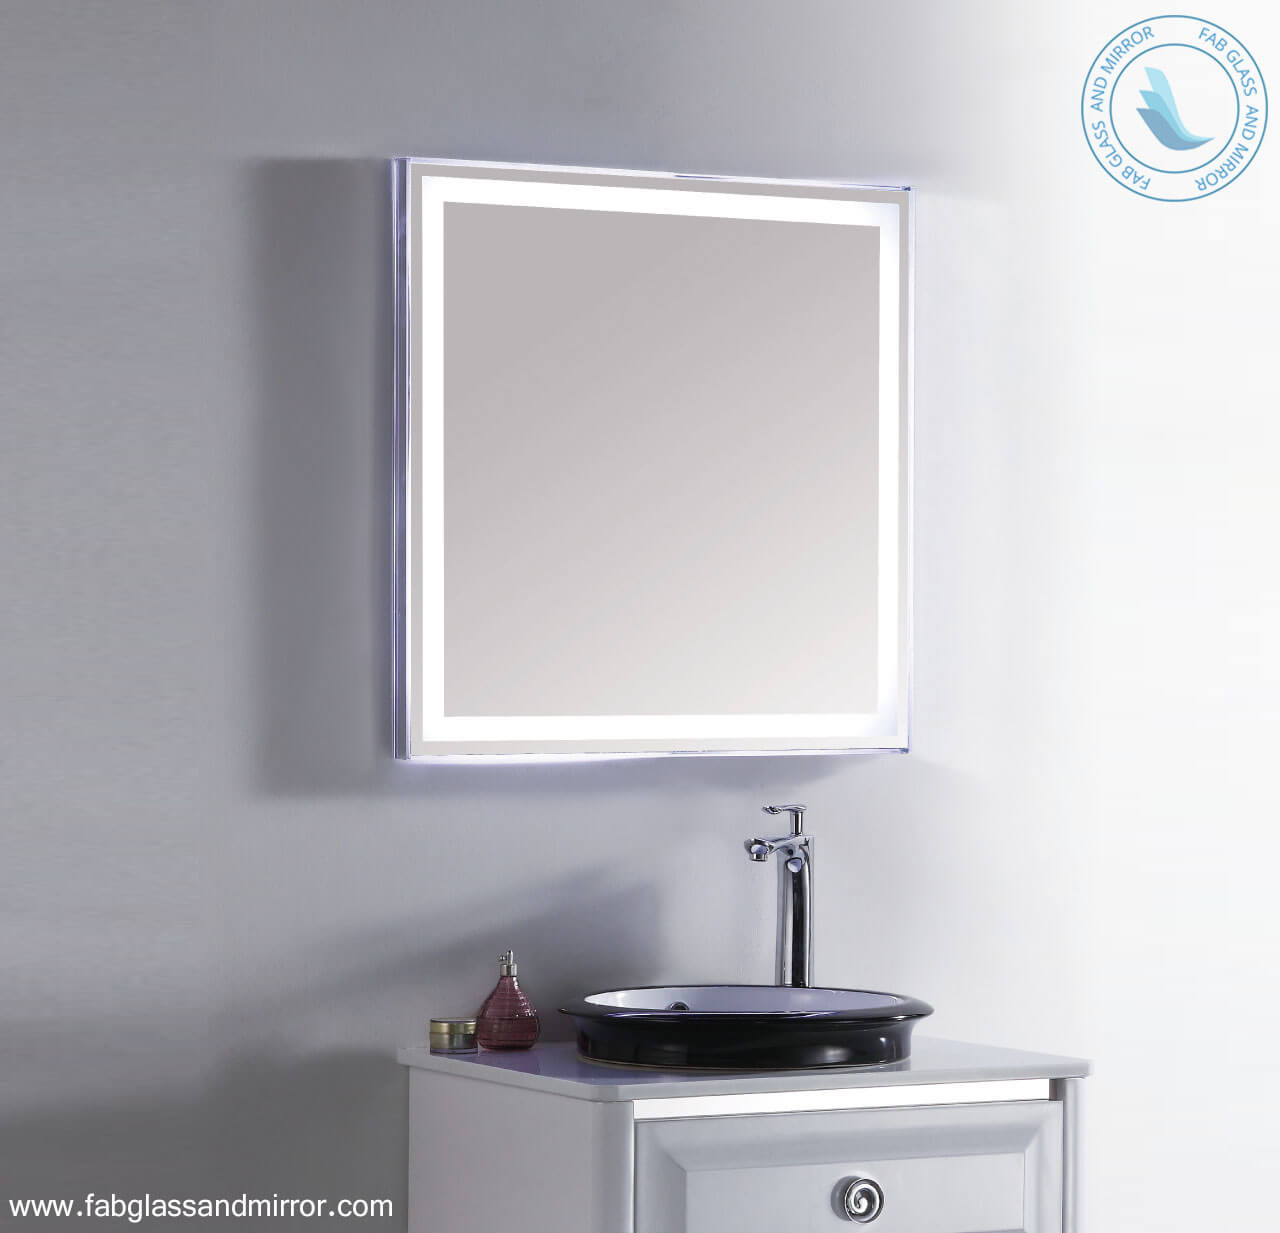 27X28 inch Bathroom LED Lighted Wall Mounted Vanity Mirror